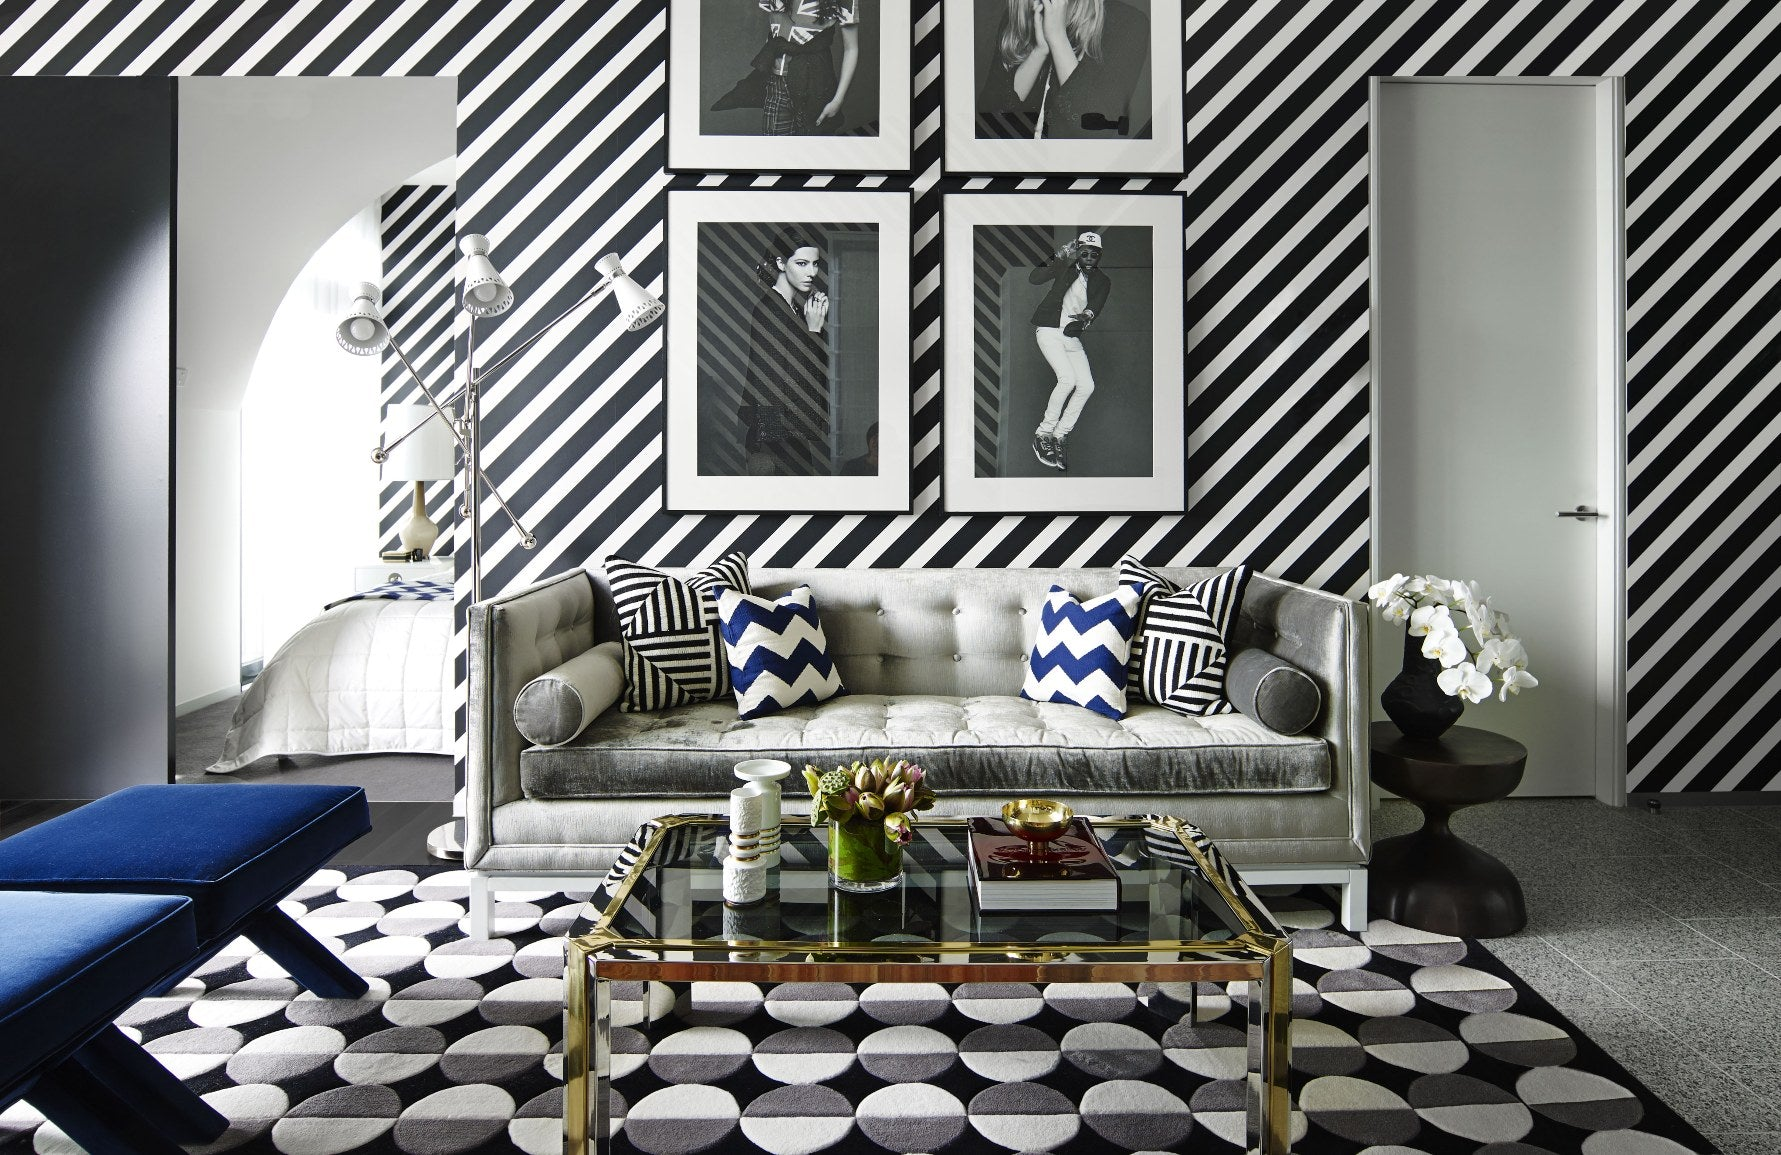 Forms of Geometric Shapes & Patterns In Interior Design | Six Senses Duxton | LuxDeco.com Style Guide